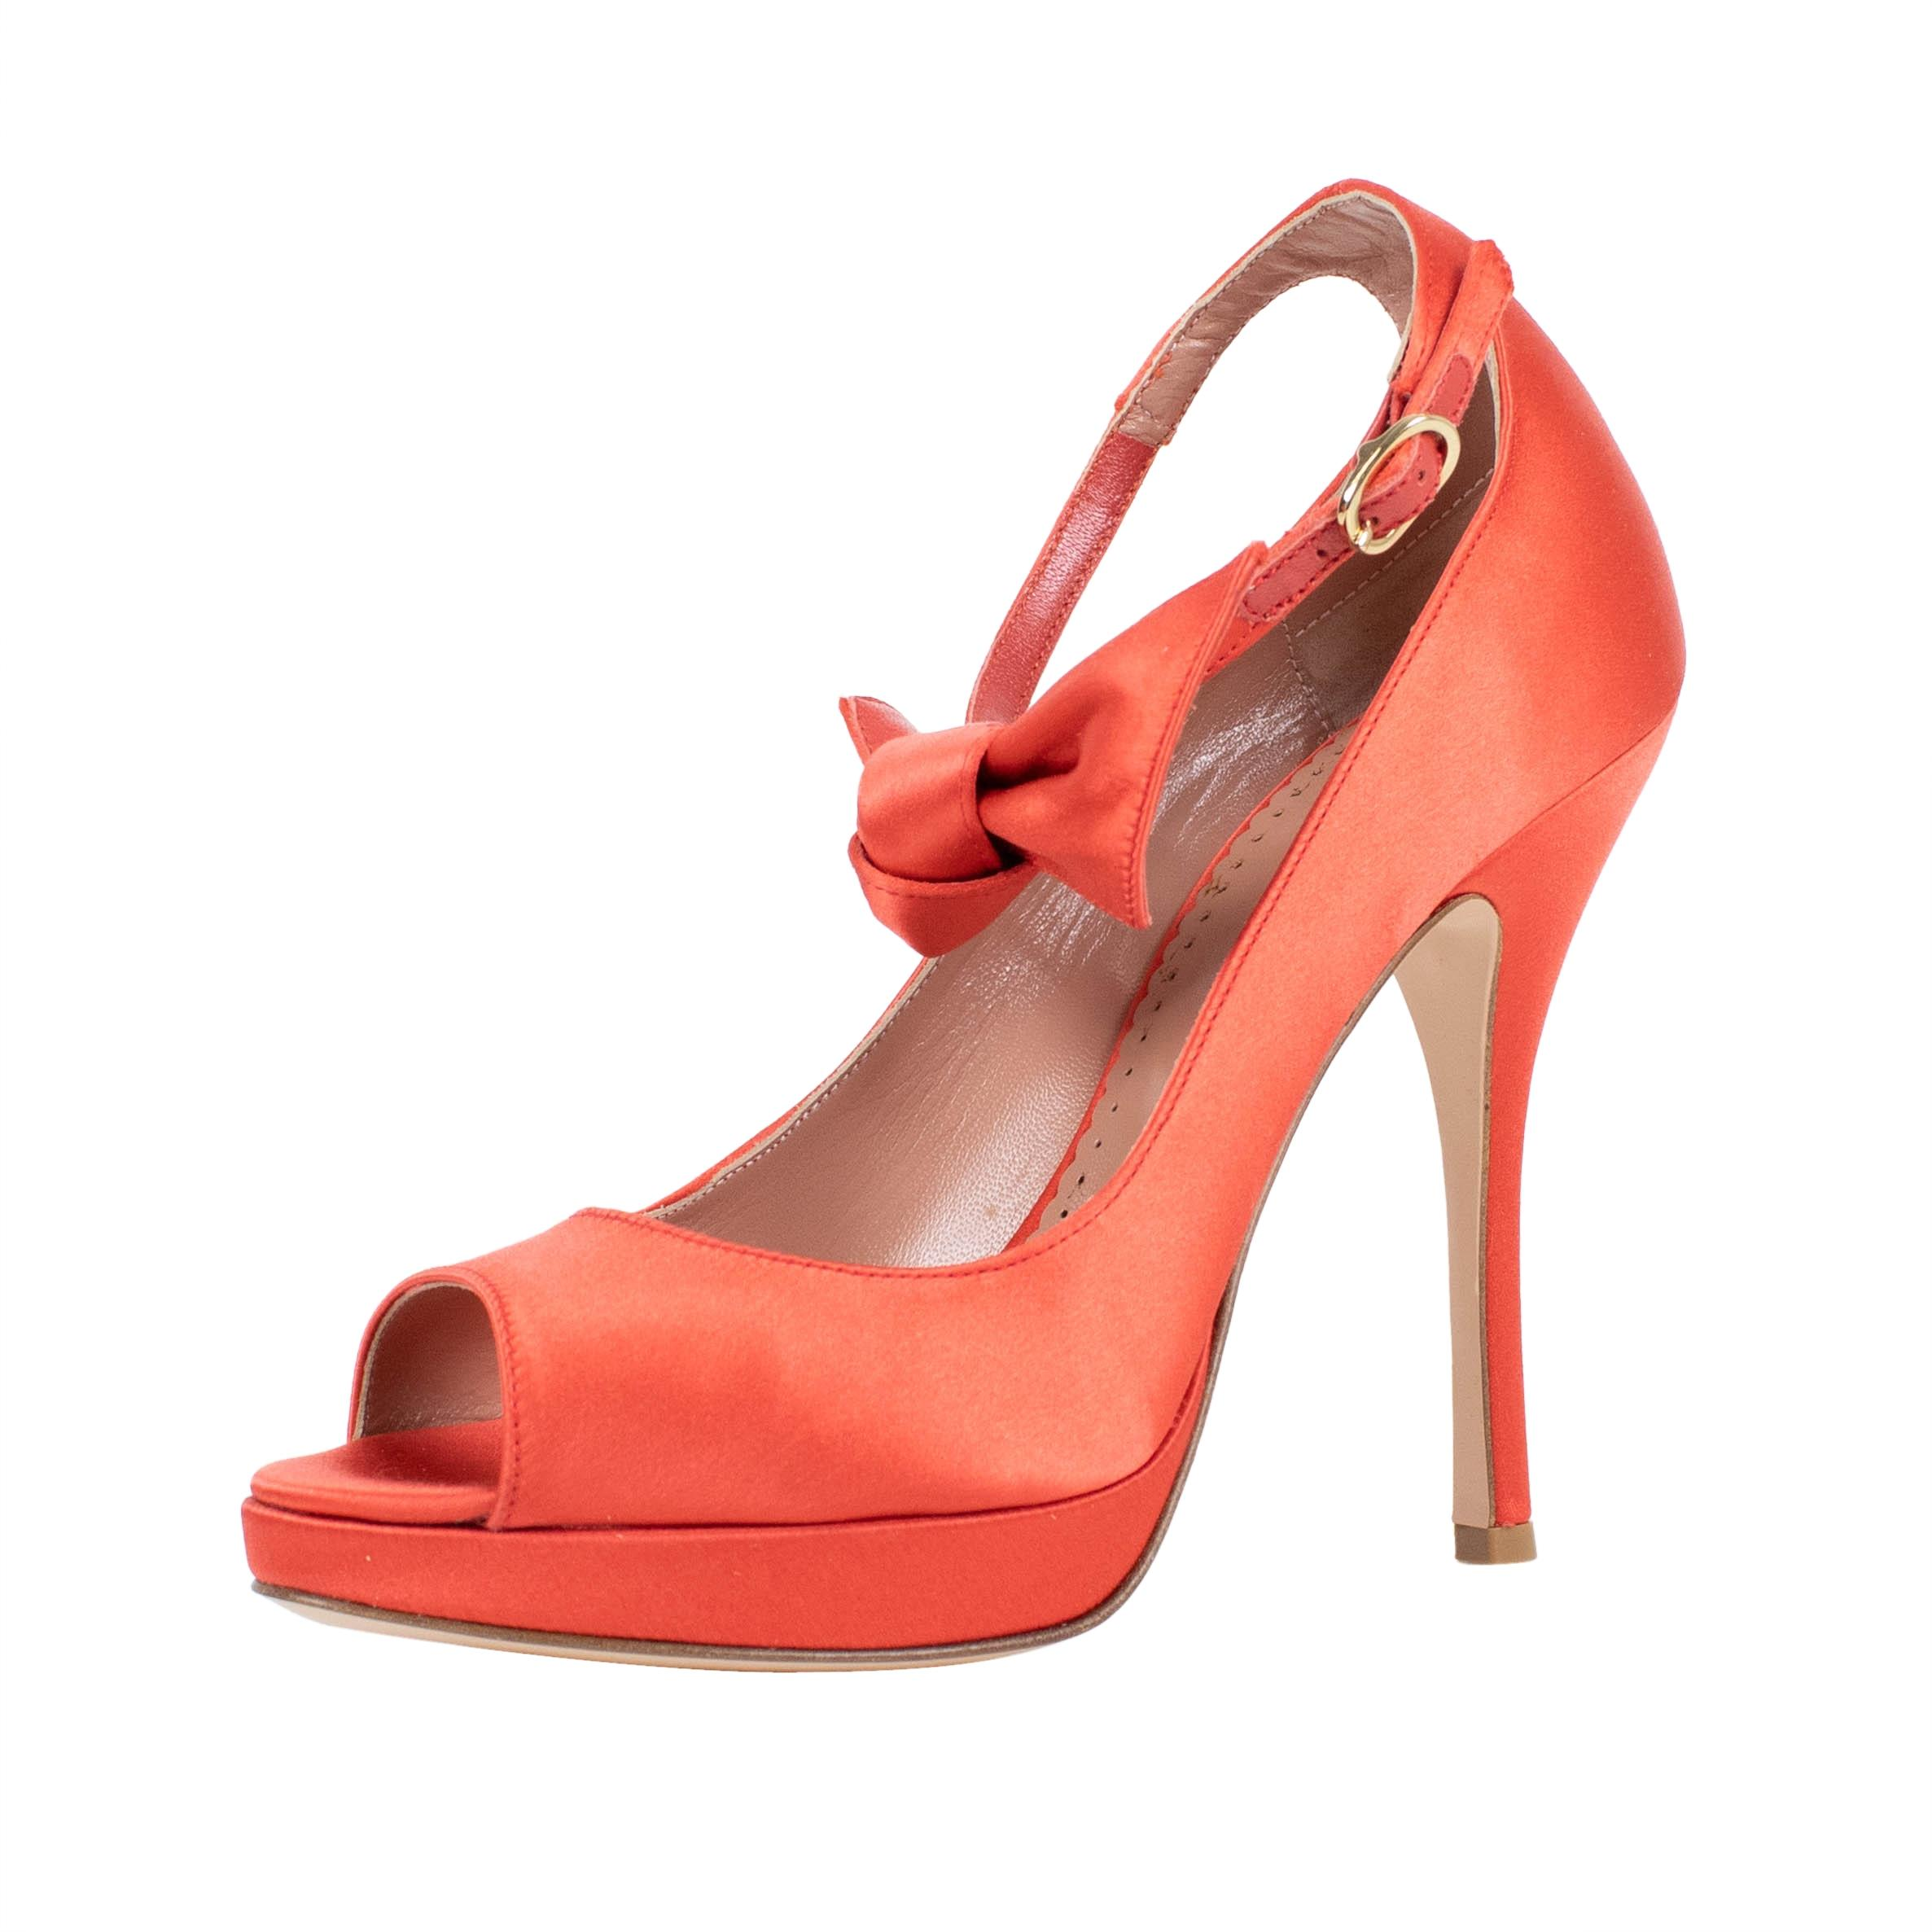 RED Valentino Orange With Bow Open Toe Leather Pumps Size US 7 Regular (M, B)